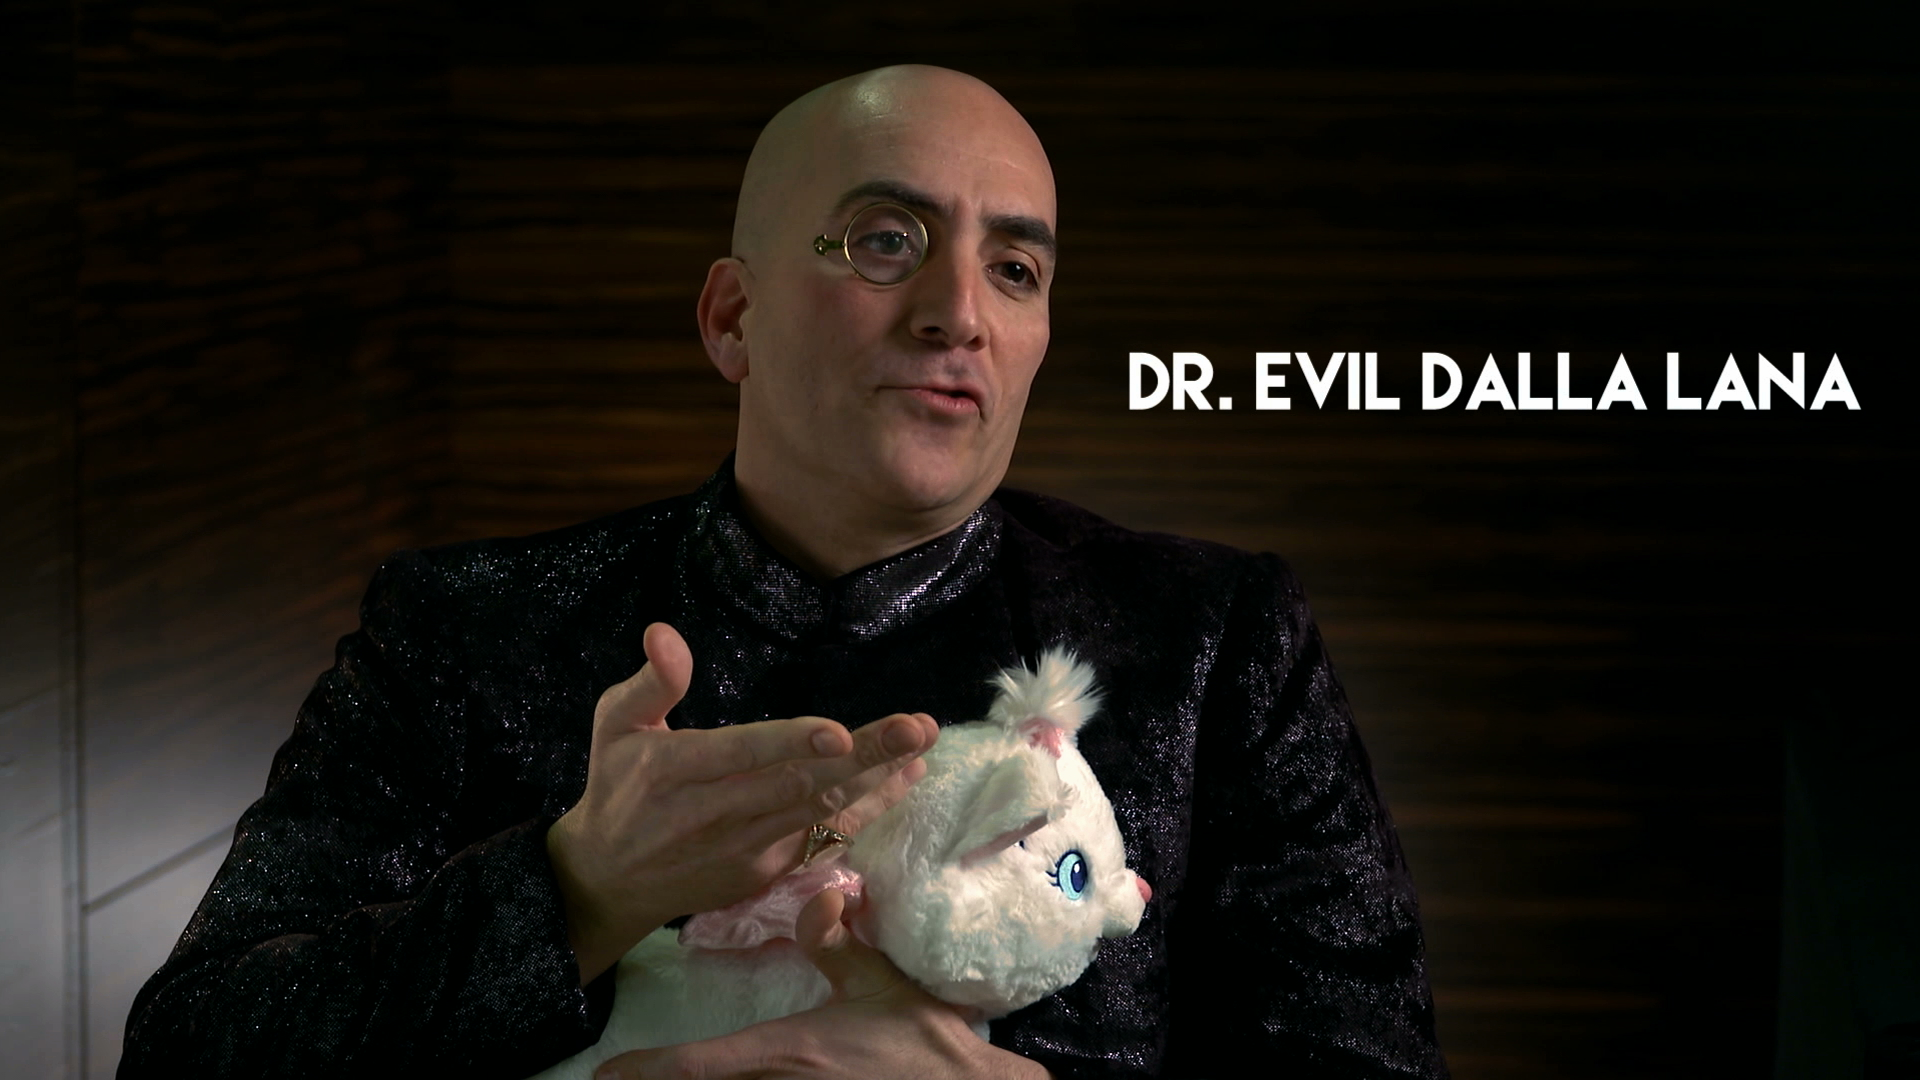 Birthday video wasn't complete without a visit by Dr. Evil.